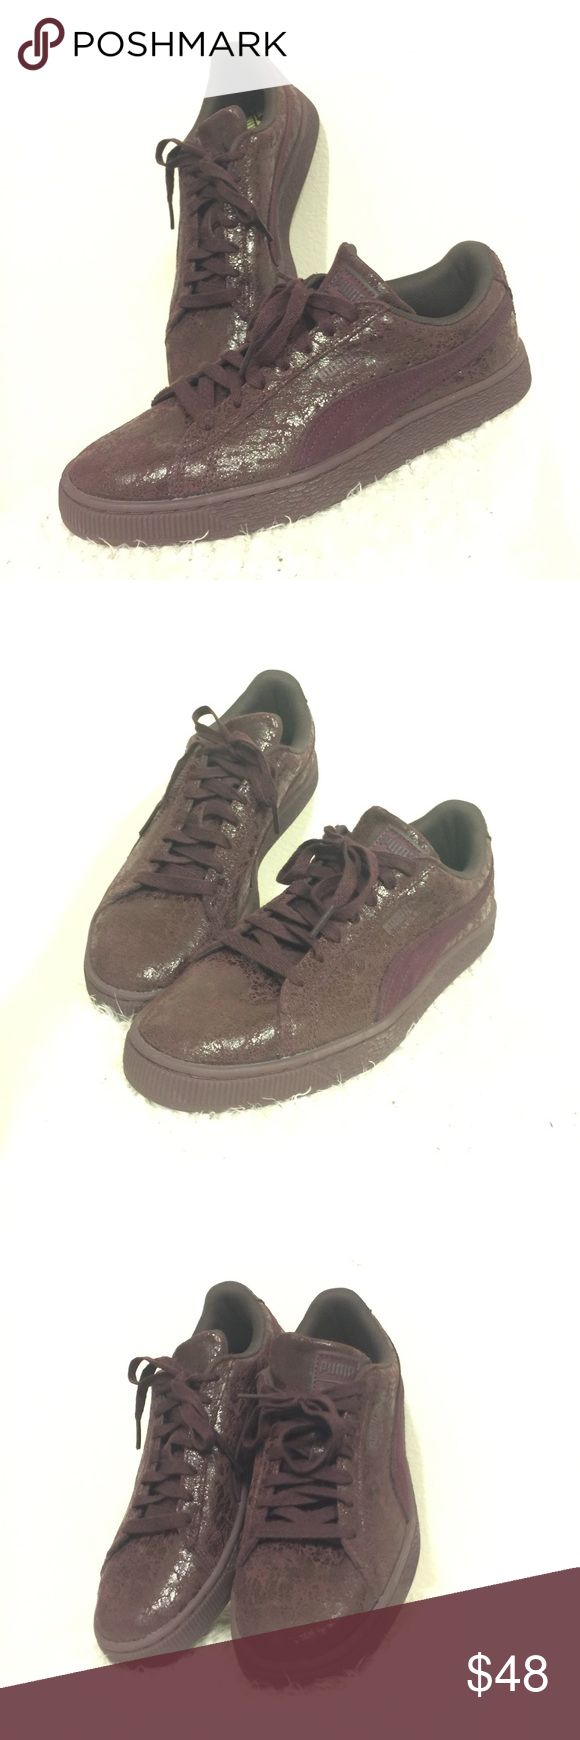 PUMA Suede Classics in Mono Burgundy PUMA • Suede Classic •  an original and popular Puma shoe • Mono Burgundy / Deep Red / Matching upper & Soles • Suede with Patent Speckle Pattern •  GOOD LOOKING SNEAKERS • NEW with out tags • NWOT • US Women's Size 9 •  🎆 Price is Firm 🎆 Puma Shoes Sneakers